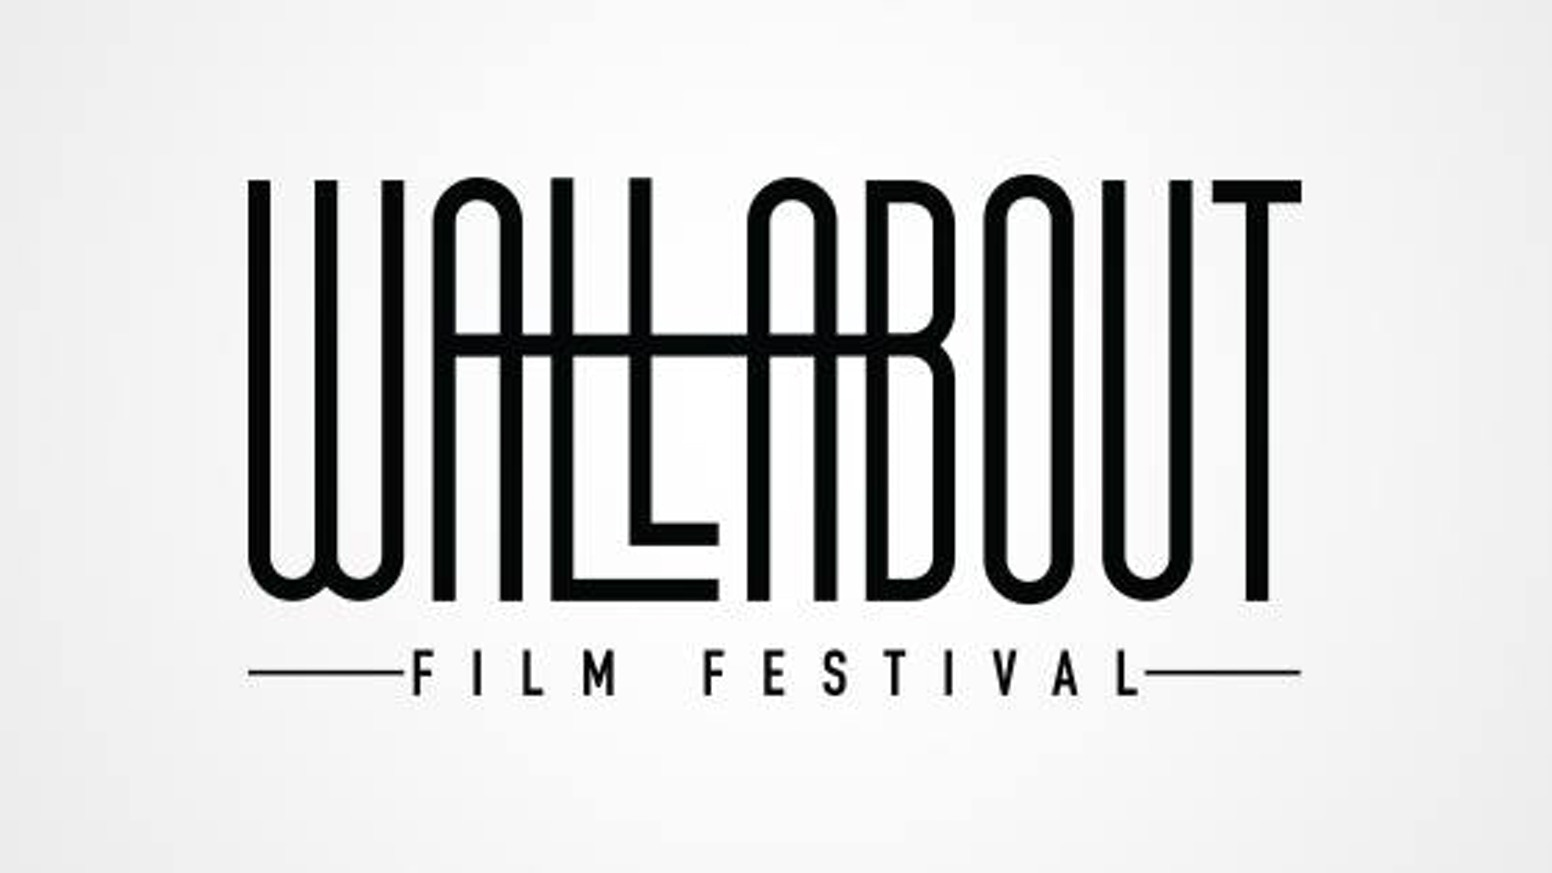 Wallabout Film Festival 2018: For Students, By Students by